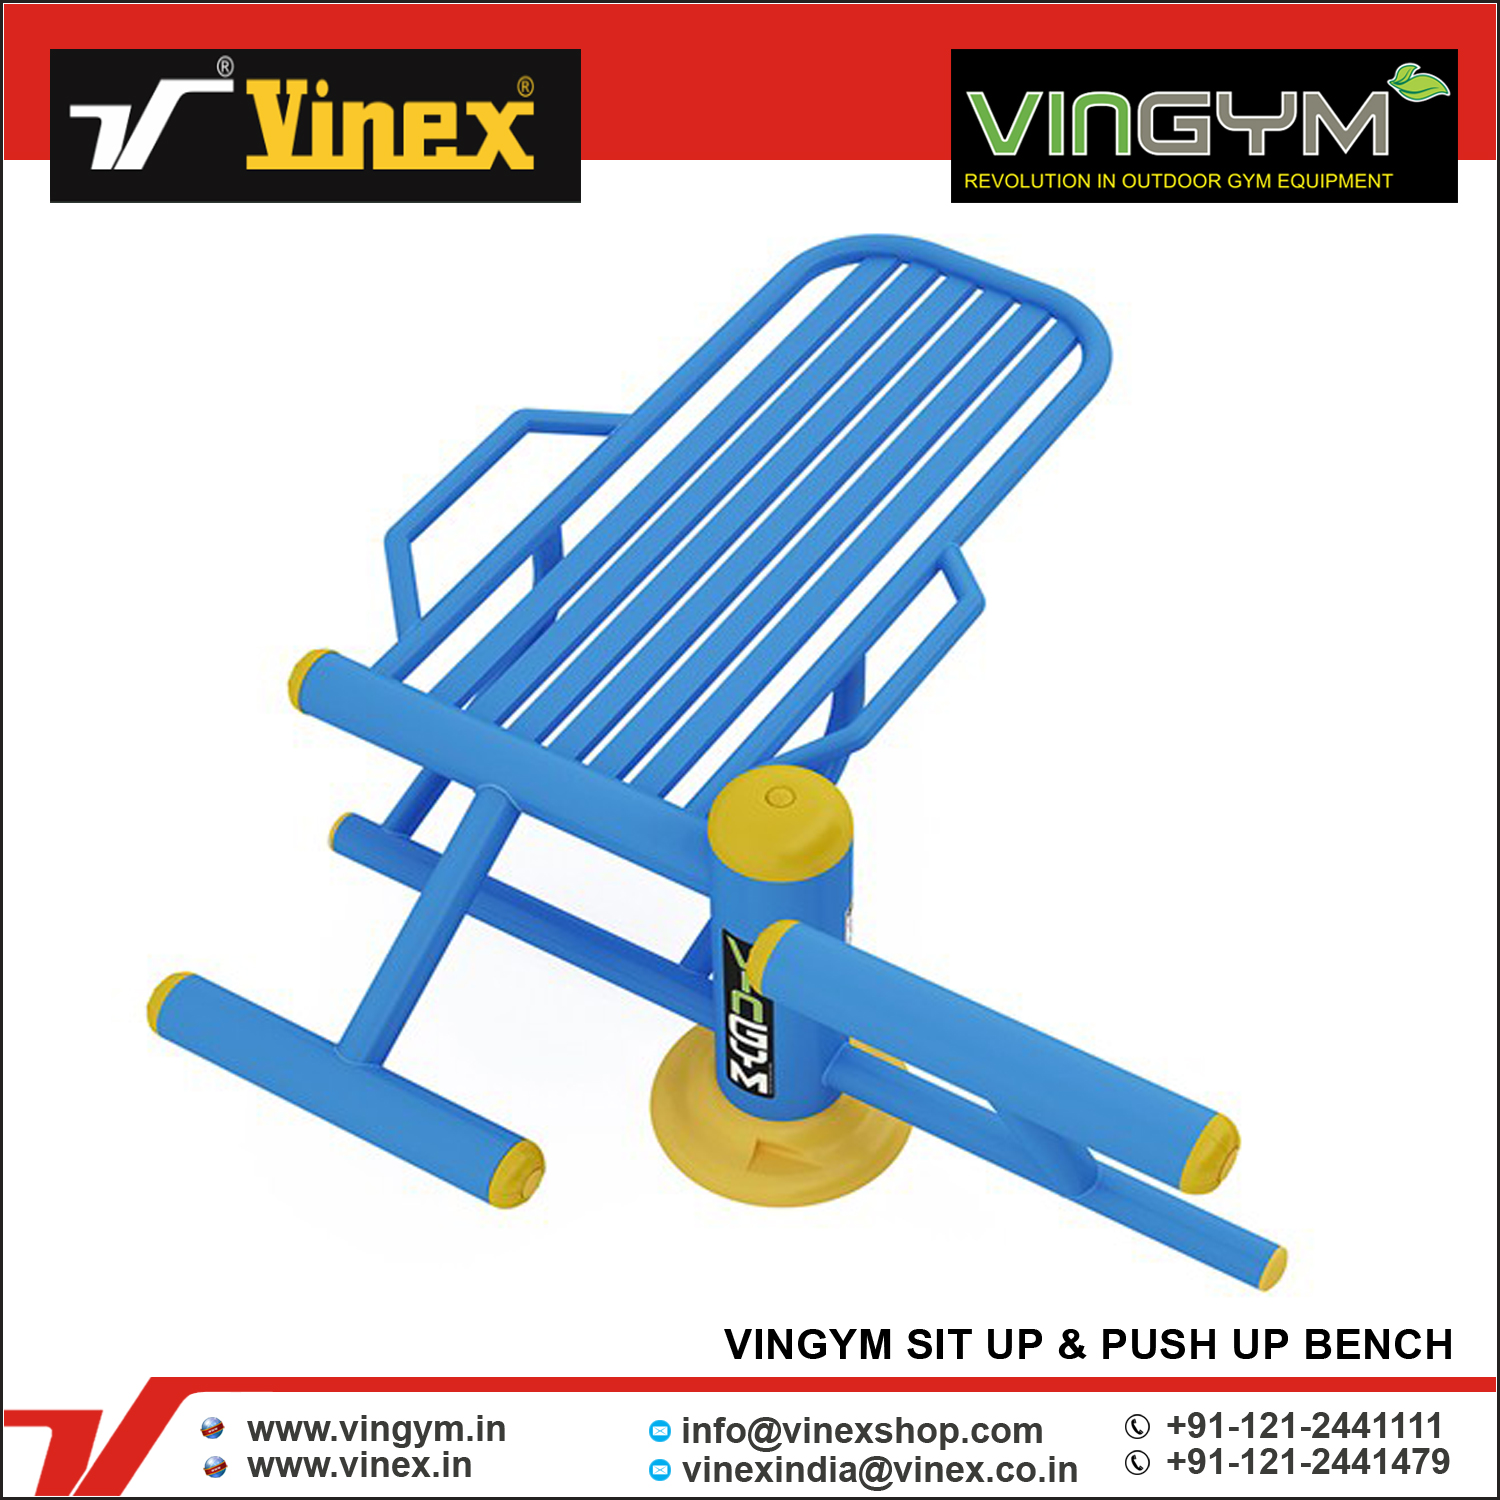 Astounding Vingym Outdoor Gym Fitness Equipment Buy Green Gym Bralicious Painted Fabric Chair Ideas Braliciousco